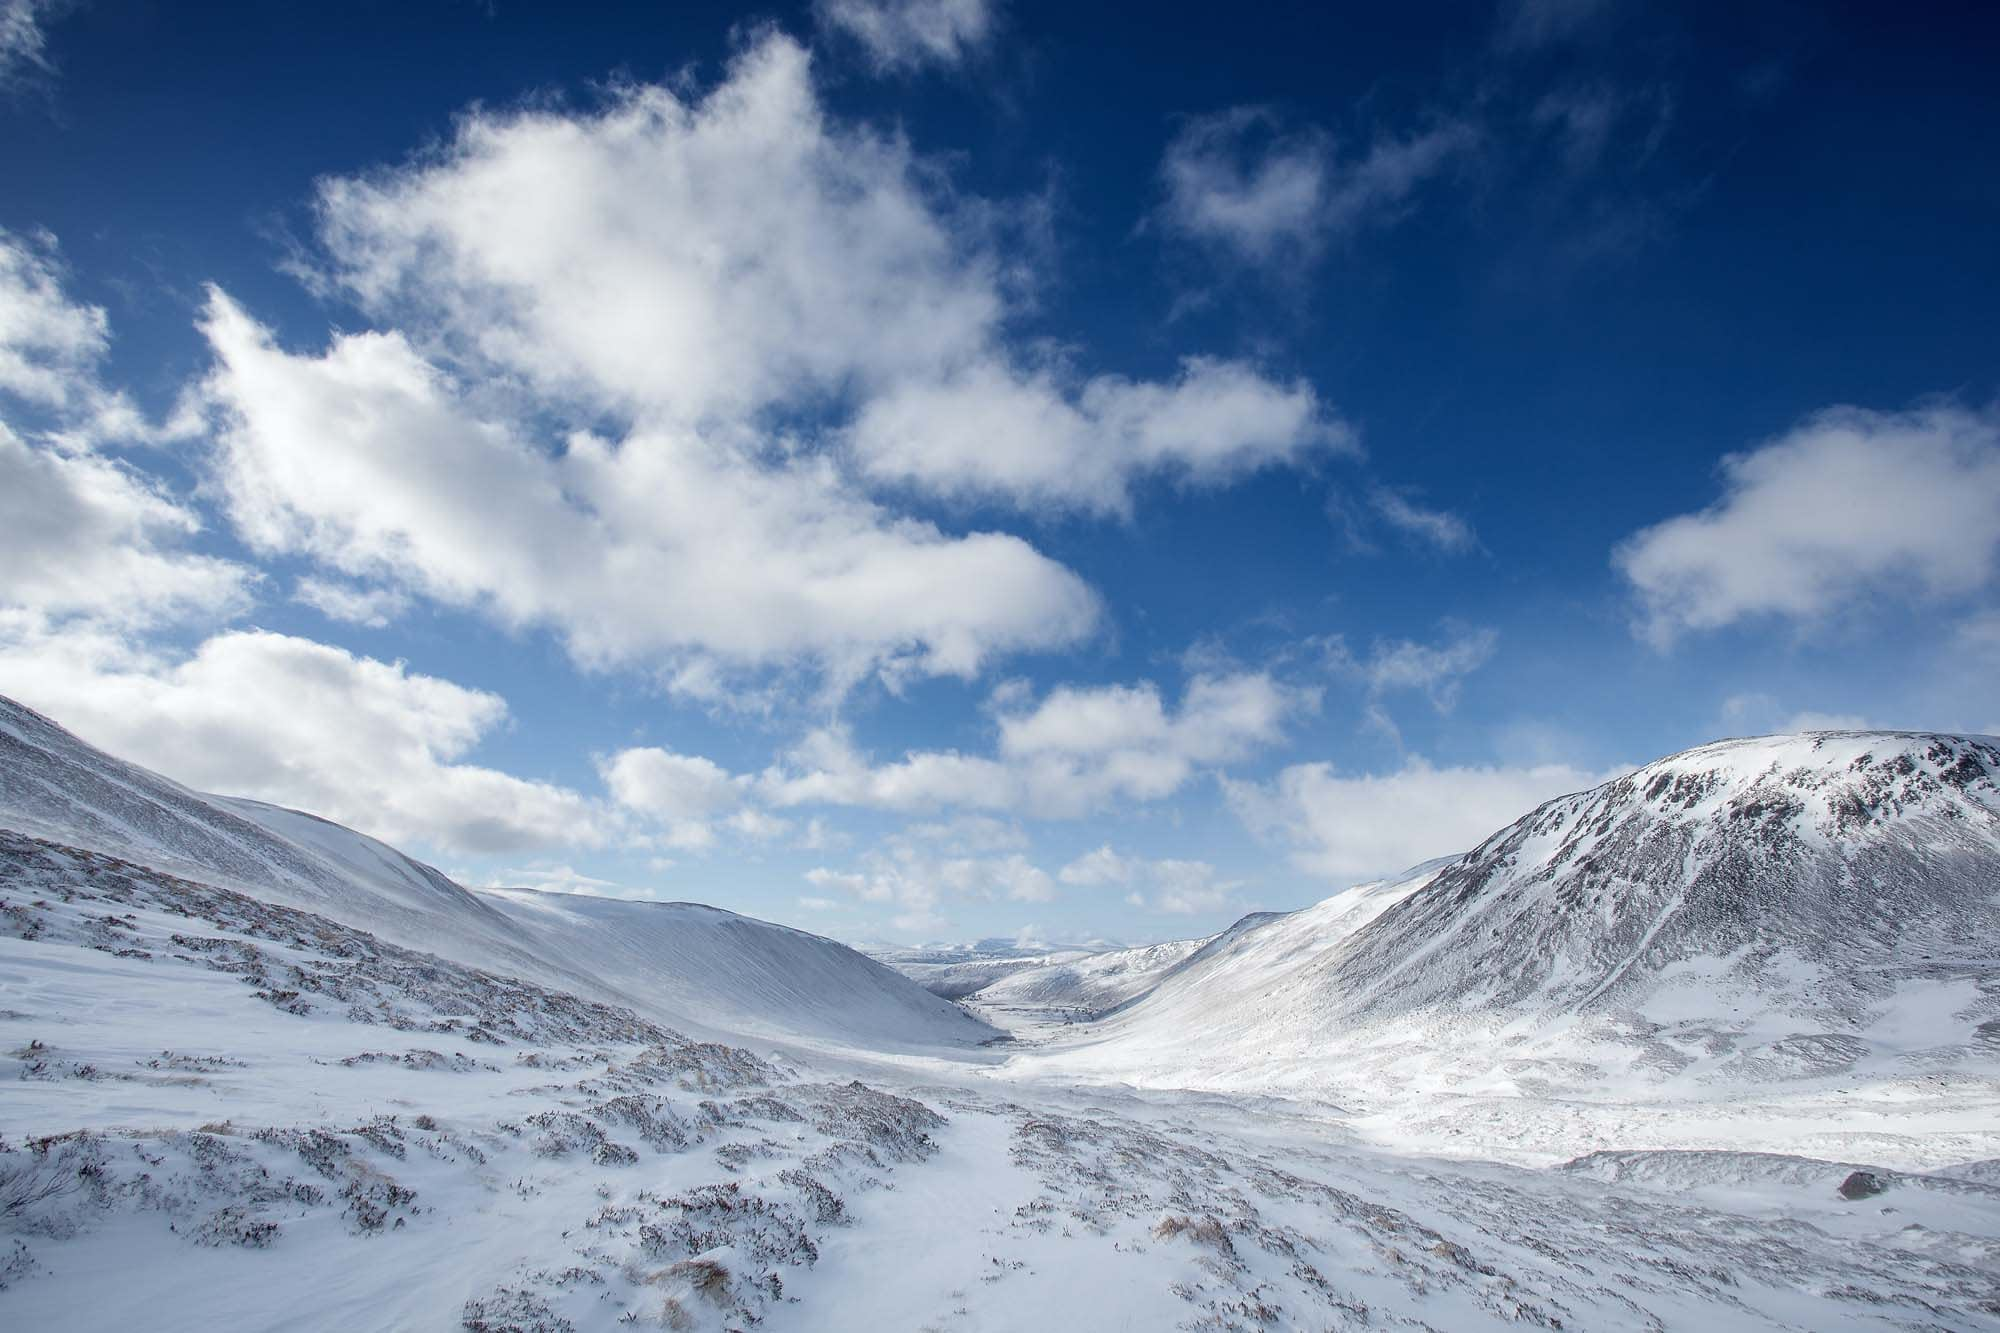 Stay in the scottish highlands during your skiing trip